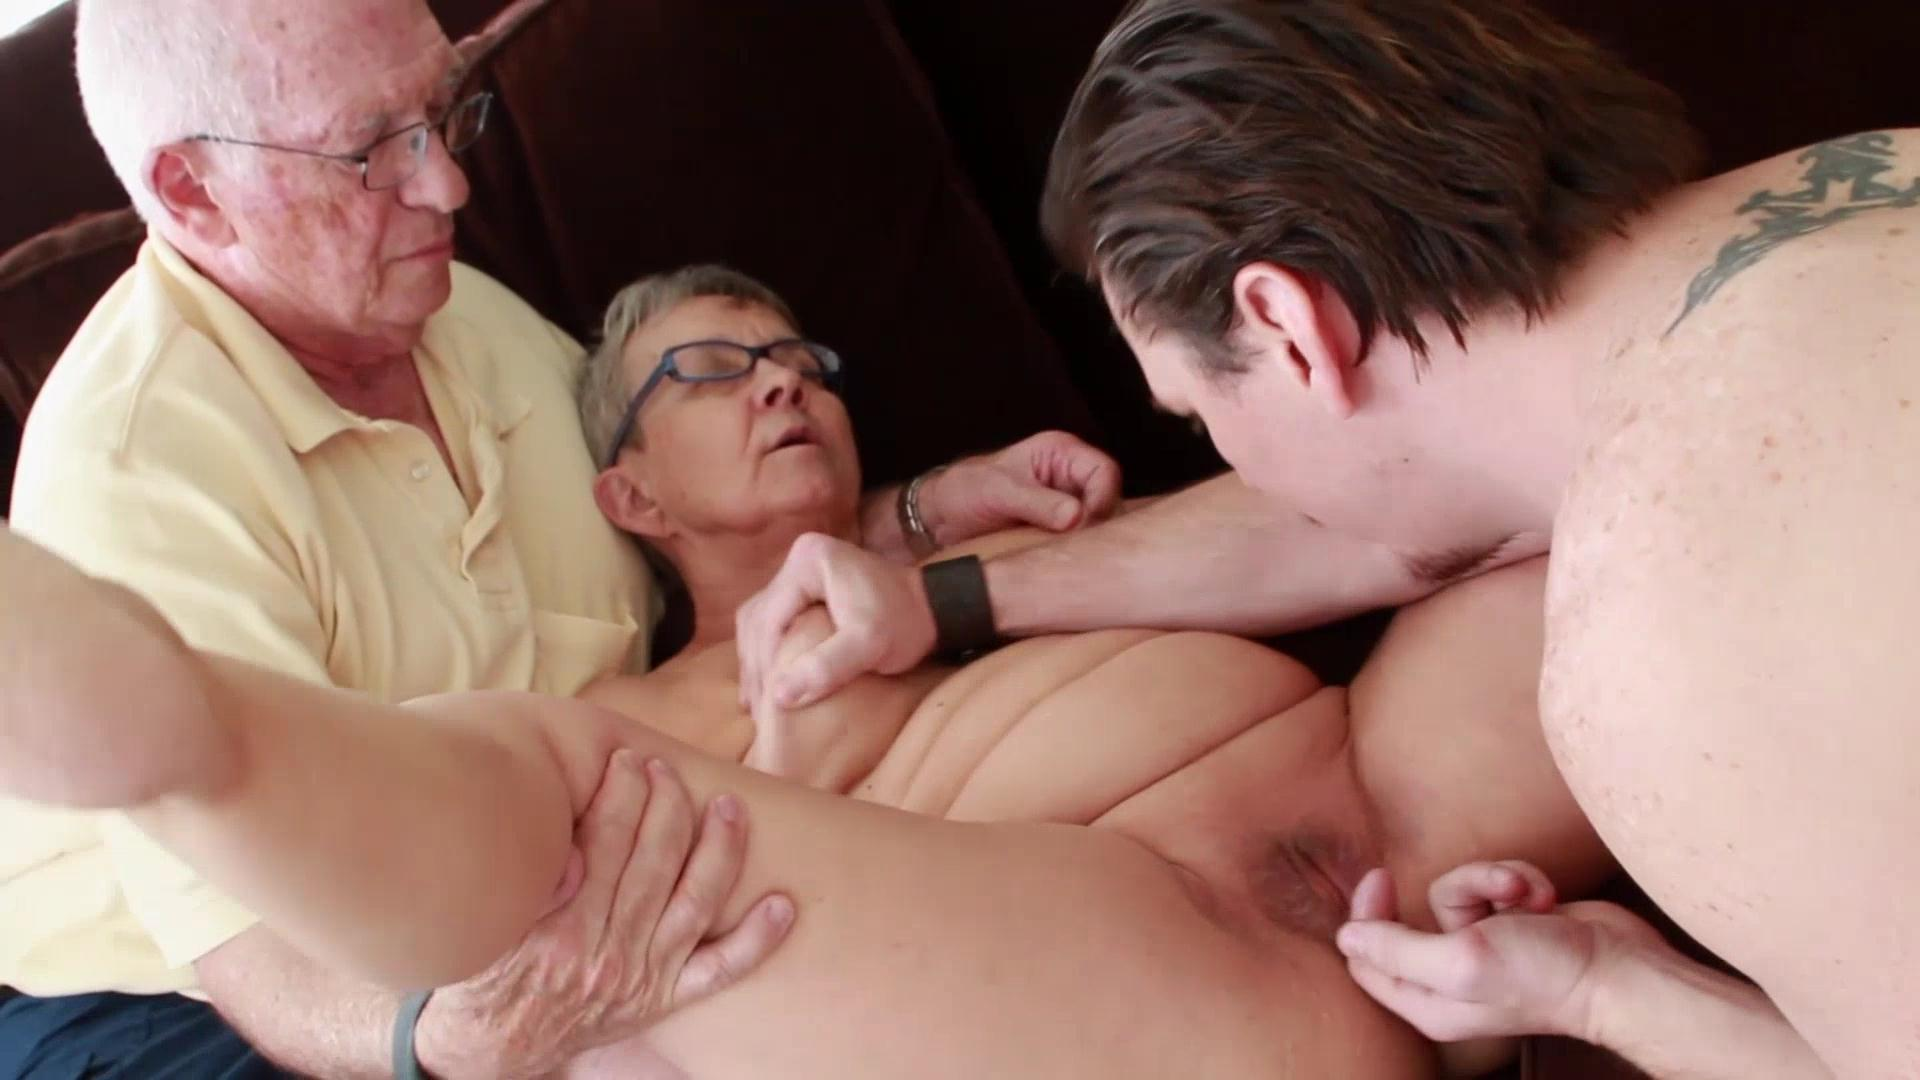 Poor granny gets butt fucked anal abuse 2